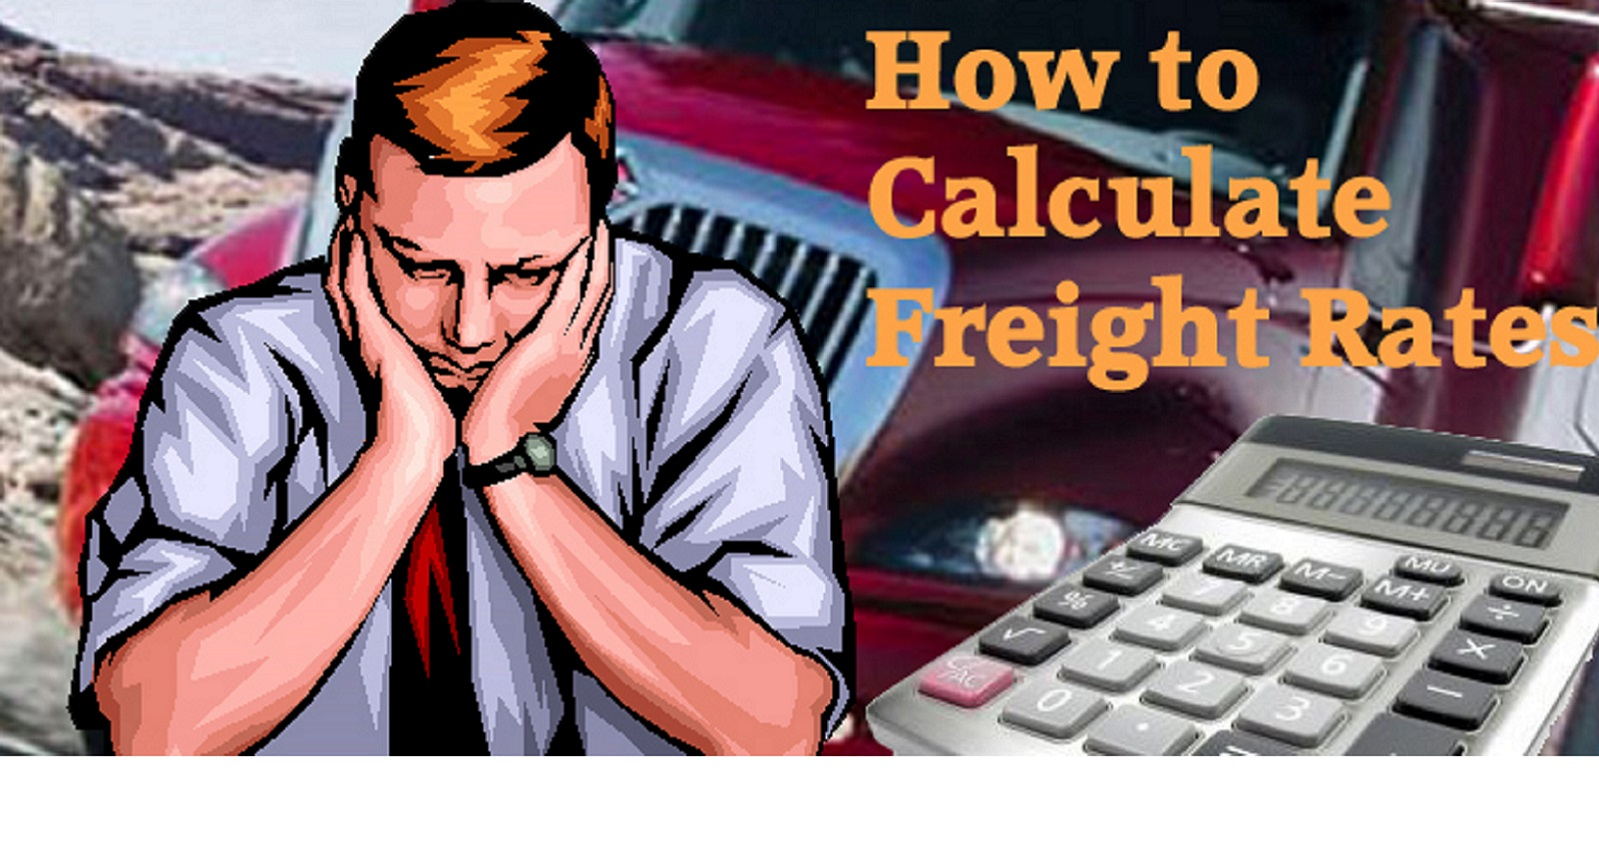 Calculating road freight rates